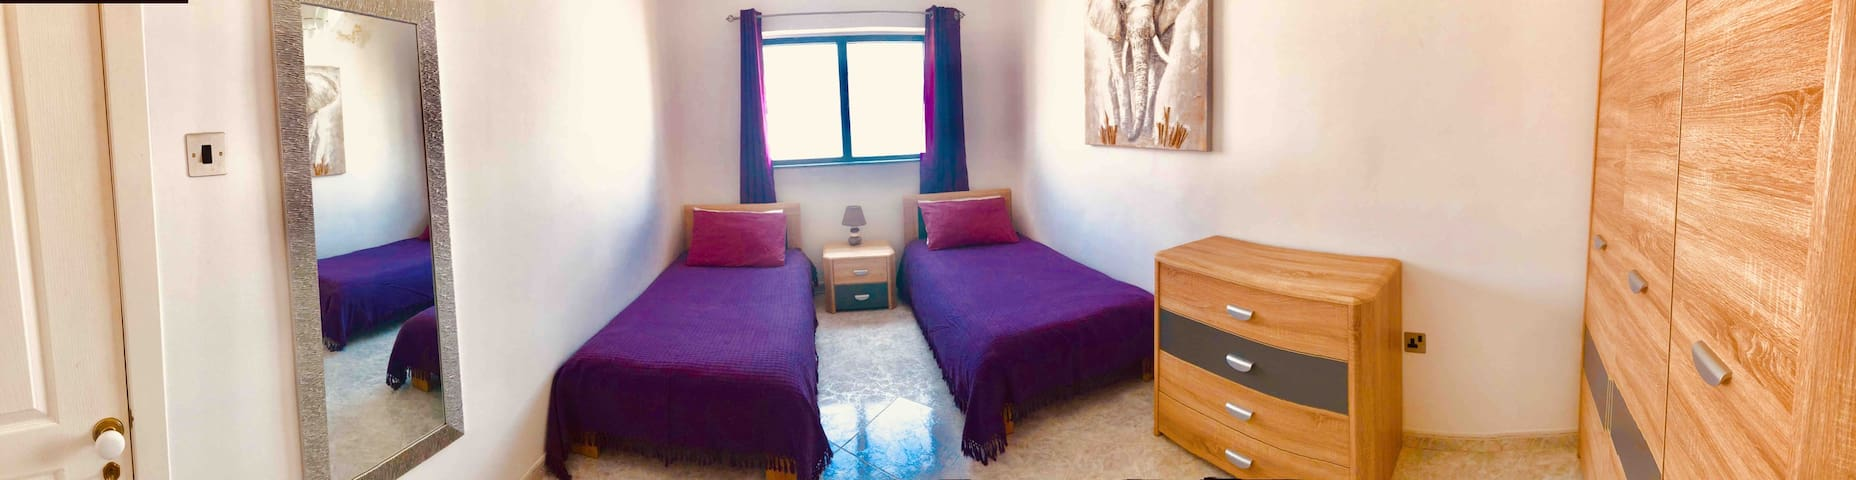 Private twin room walking distance to the sea